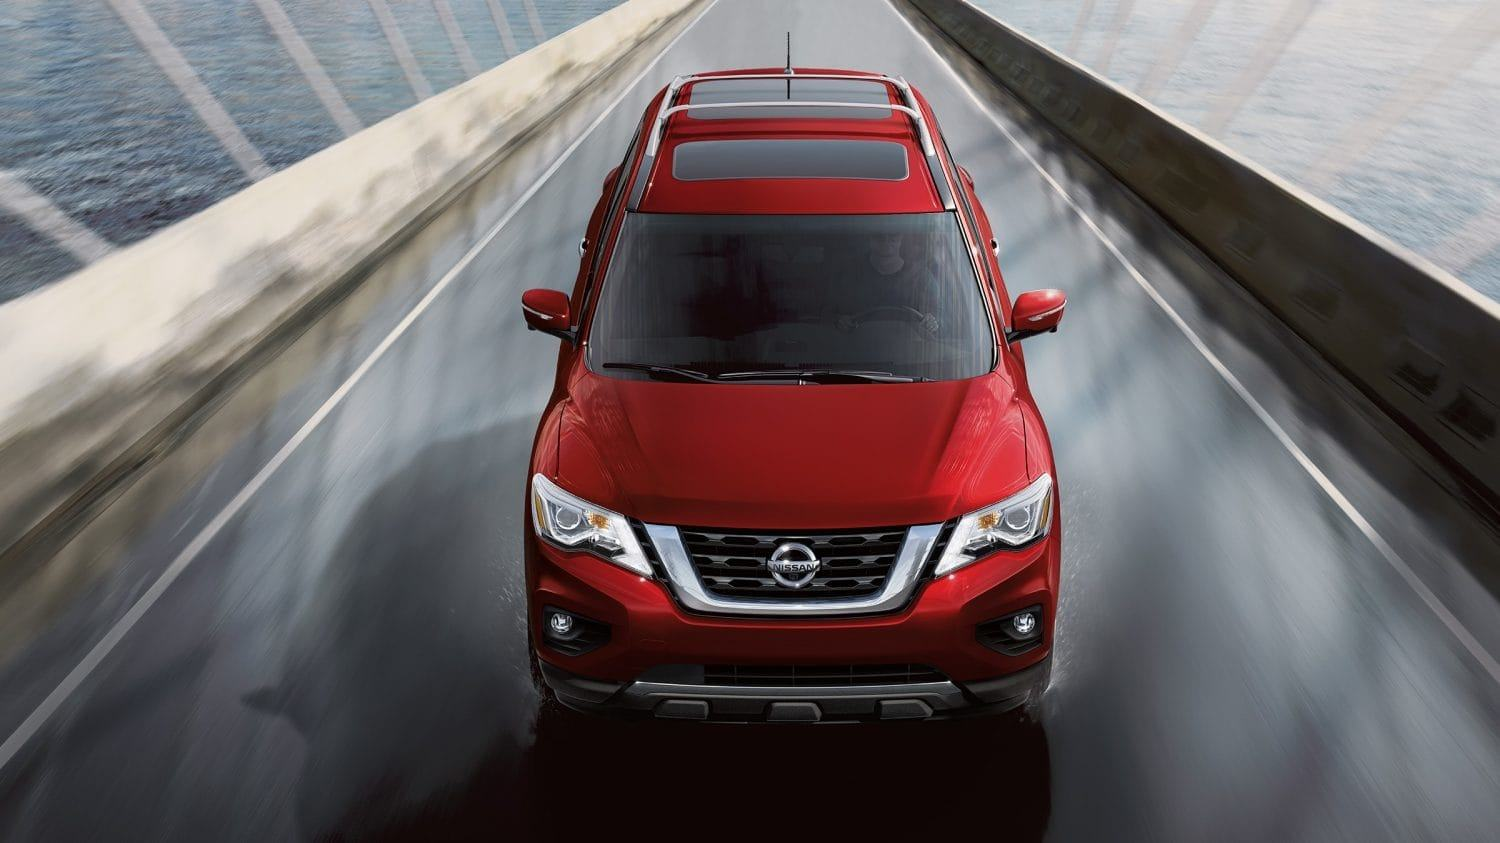 New 2019 Nissan Pathfinder More Than Enough Muscle and Towing Capacity Maximum Power and Acceleration